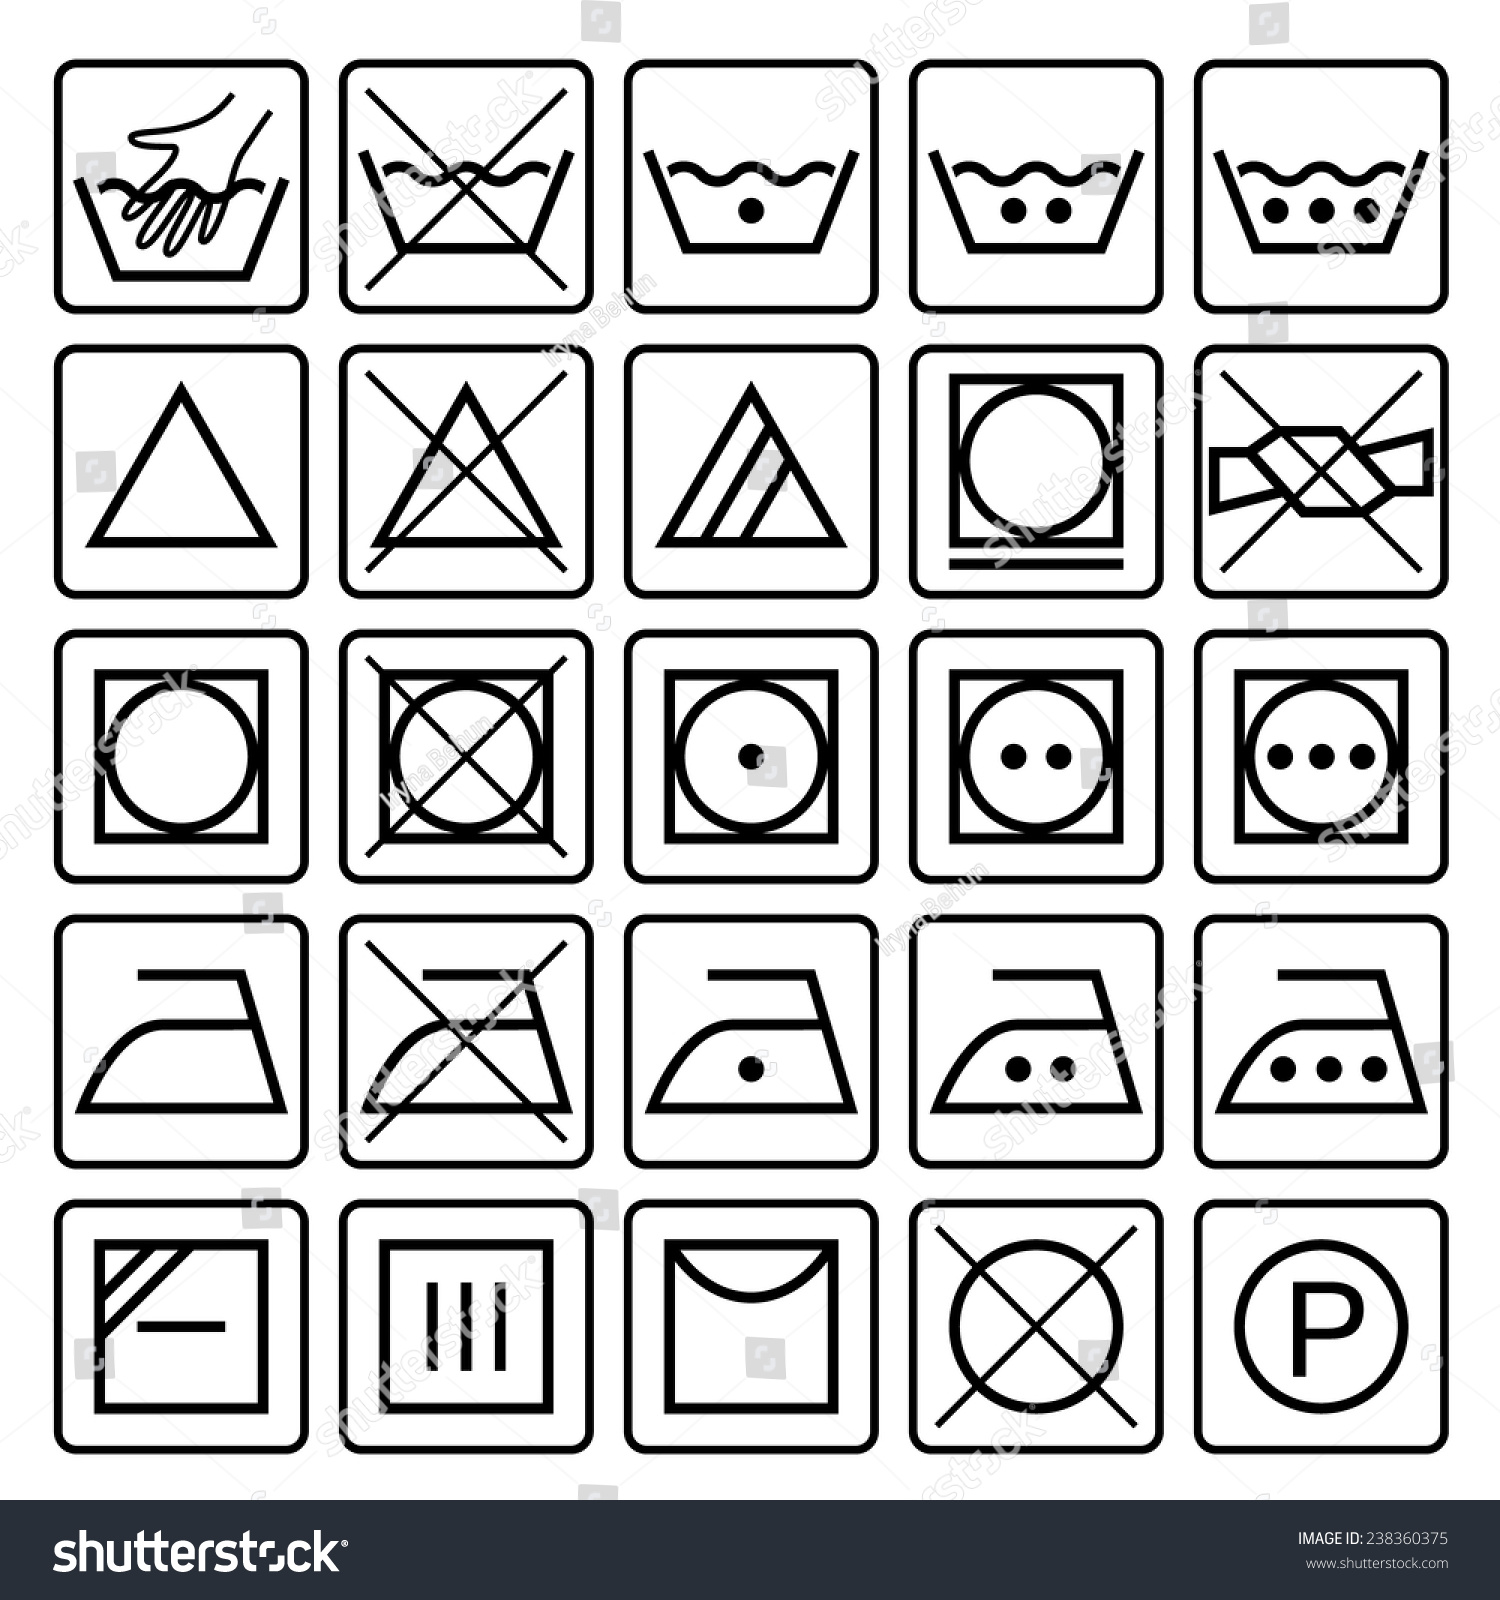 Laundry Care Symbols Set Textile Care Stock Vector 2018 238360375